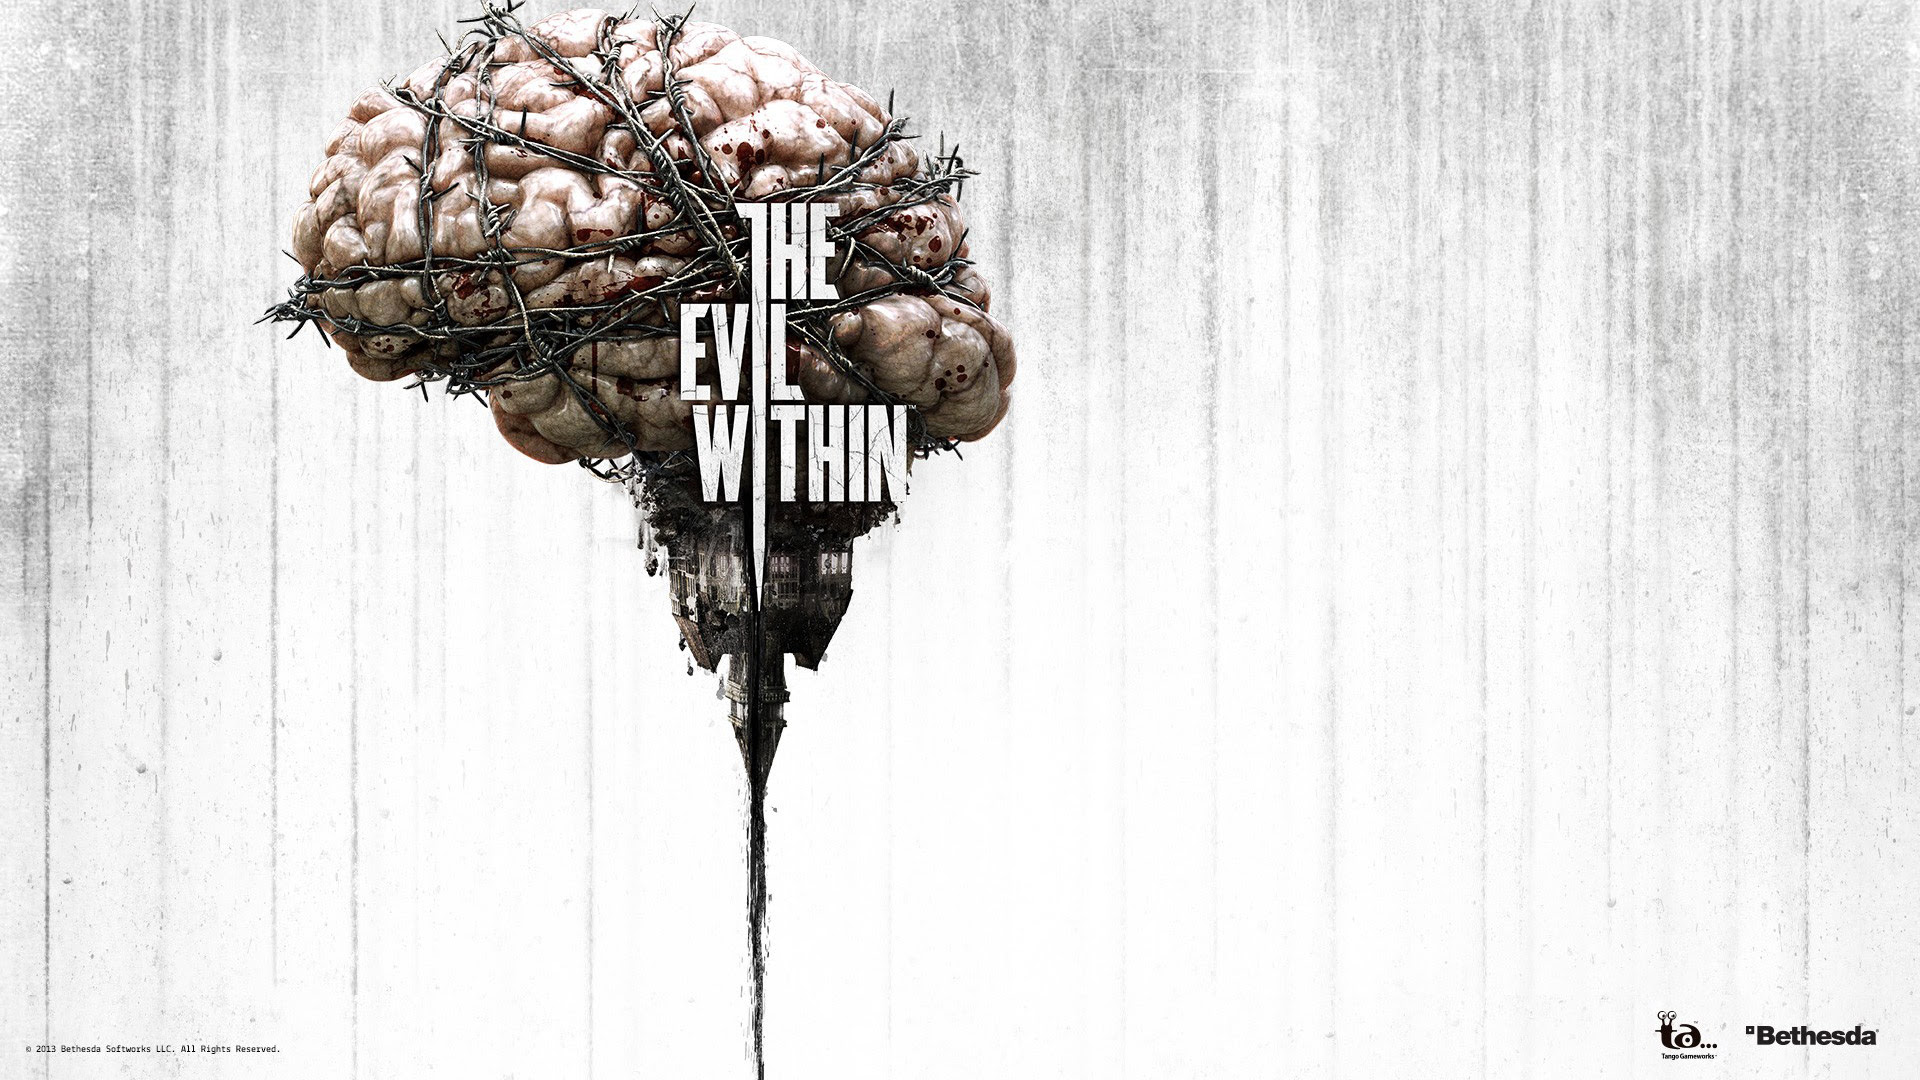 The Evil Within Wallpaper 9